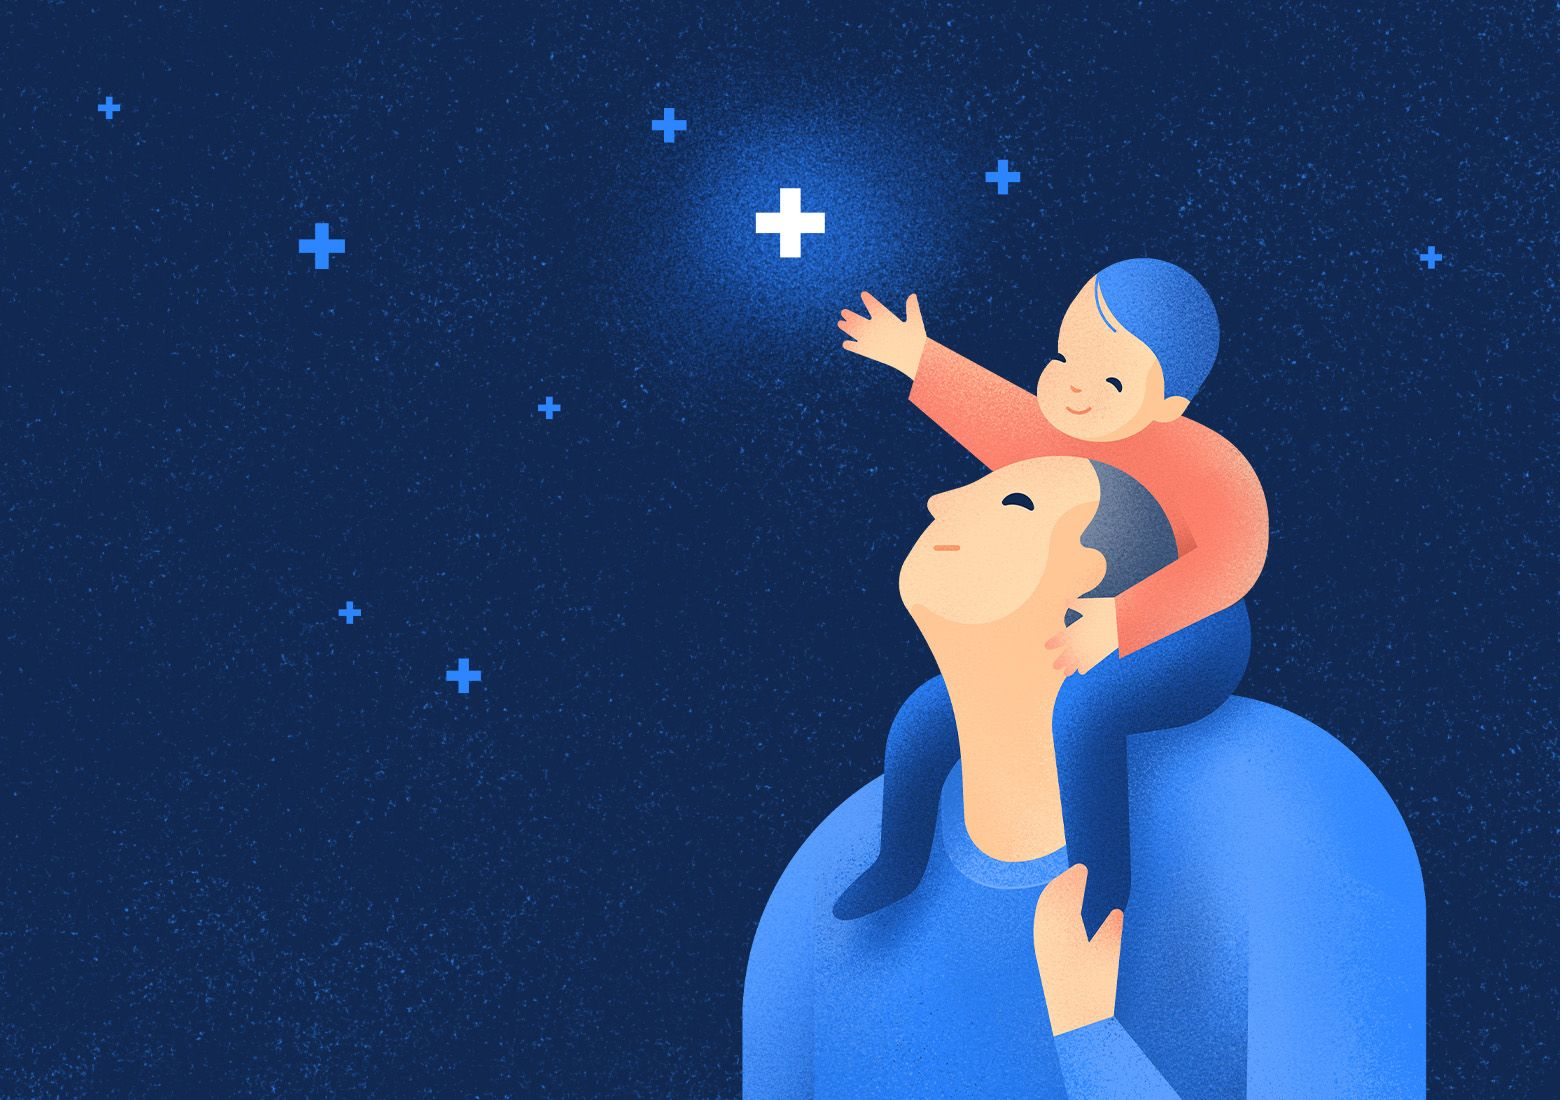 Patient pre-diagnosis triage software for the whole family. Illustration by Aga Więckowska.